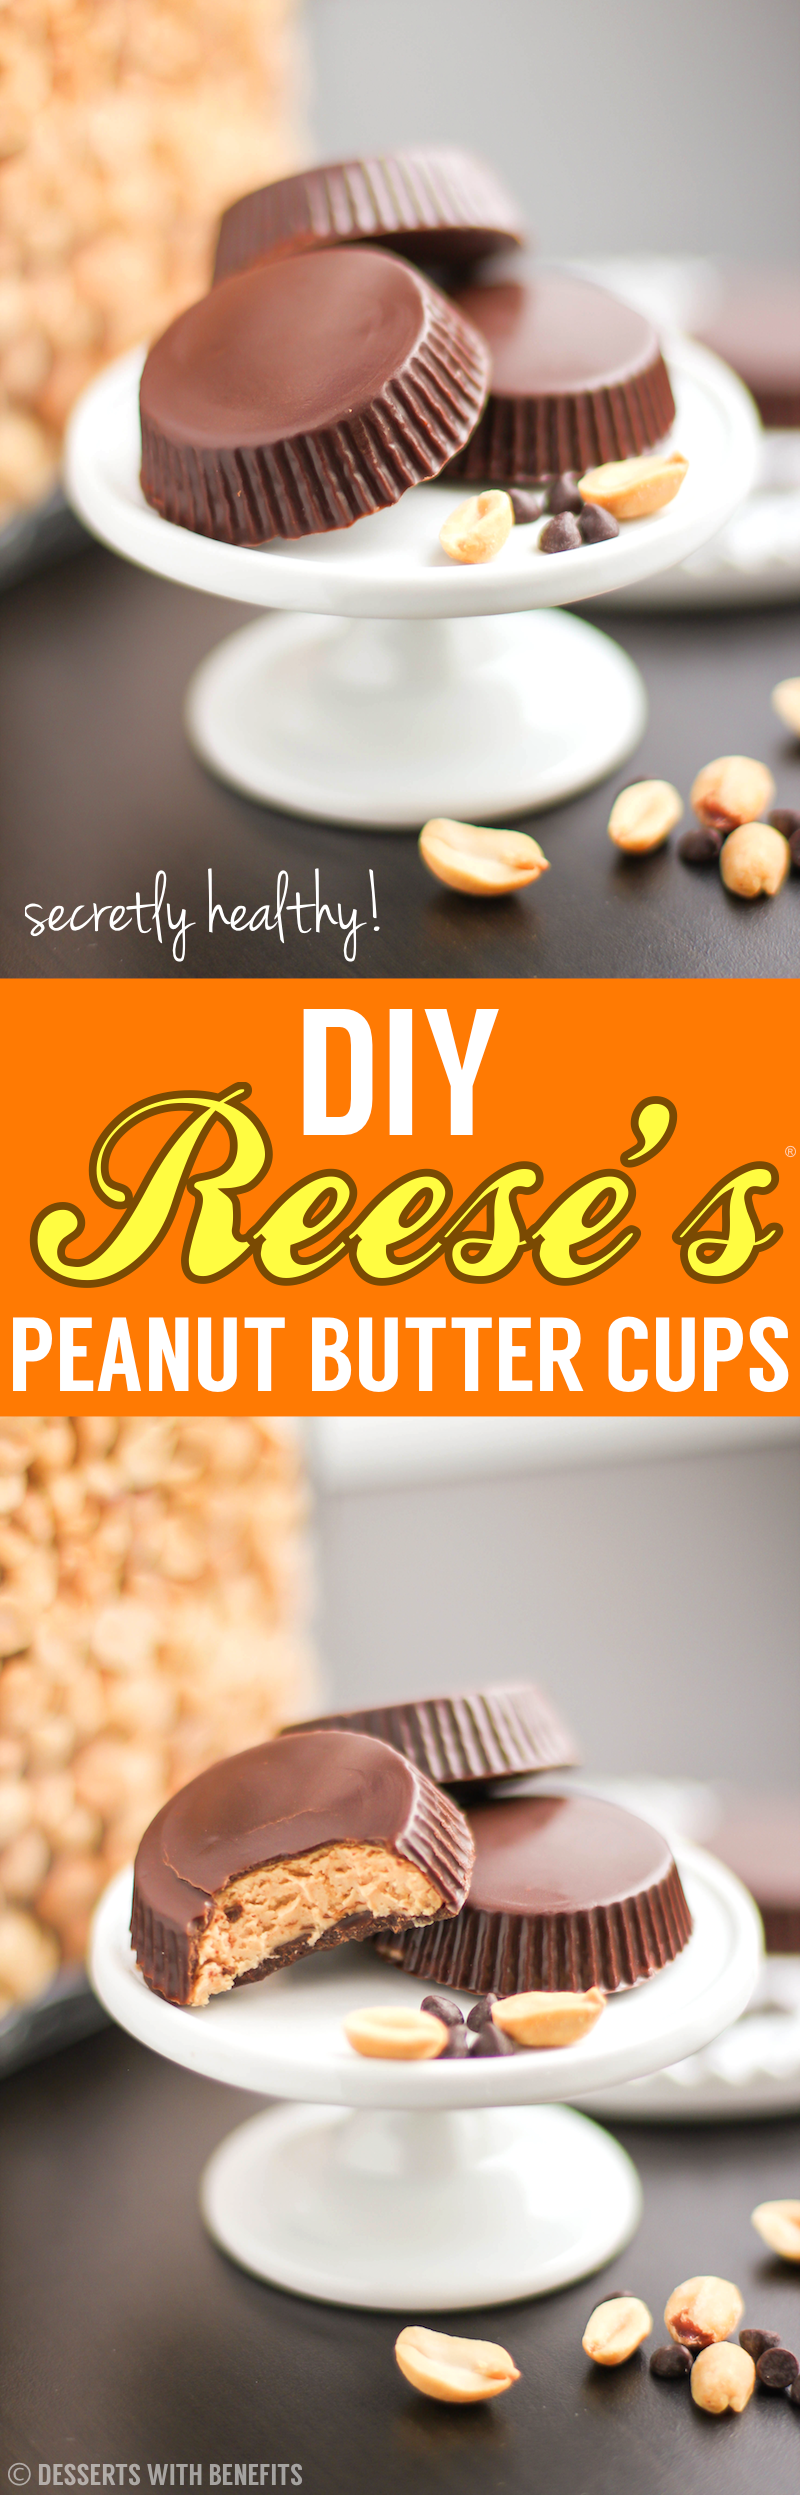 Healthy Homemade Reese's Peanut Butter Cups recipe - Healthy Dessert Recipes at Desserts with Benefits